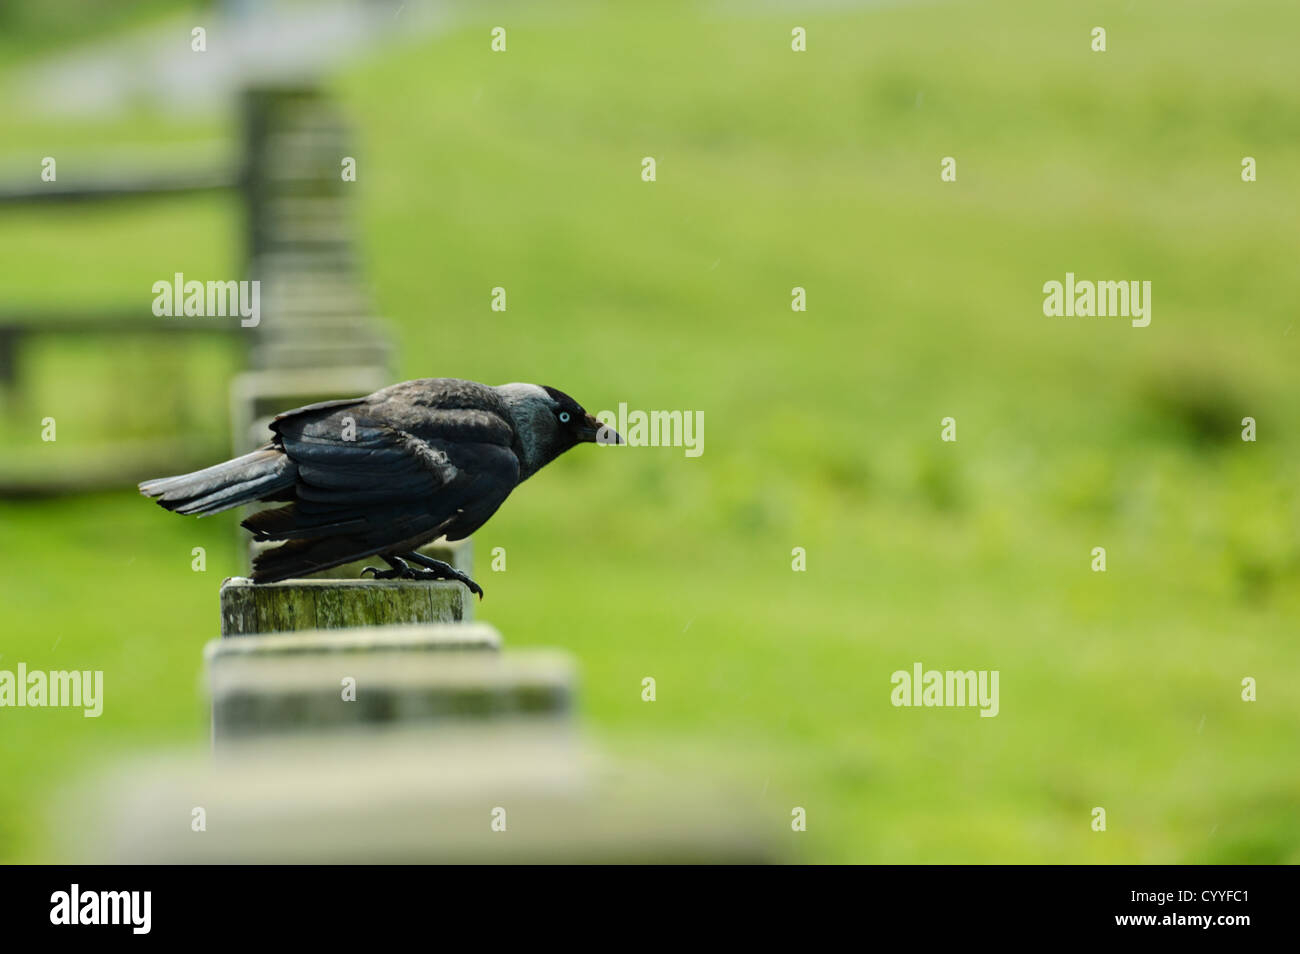 Jackdaw about to take off from perch on fence. - Stock Image